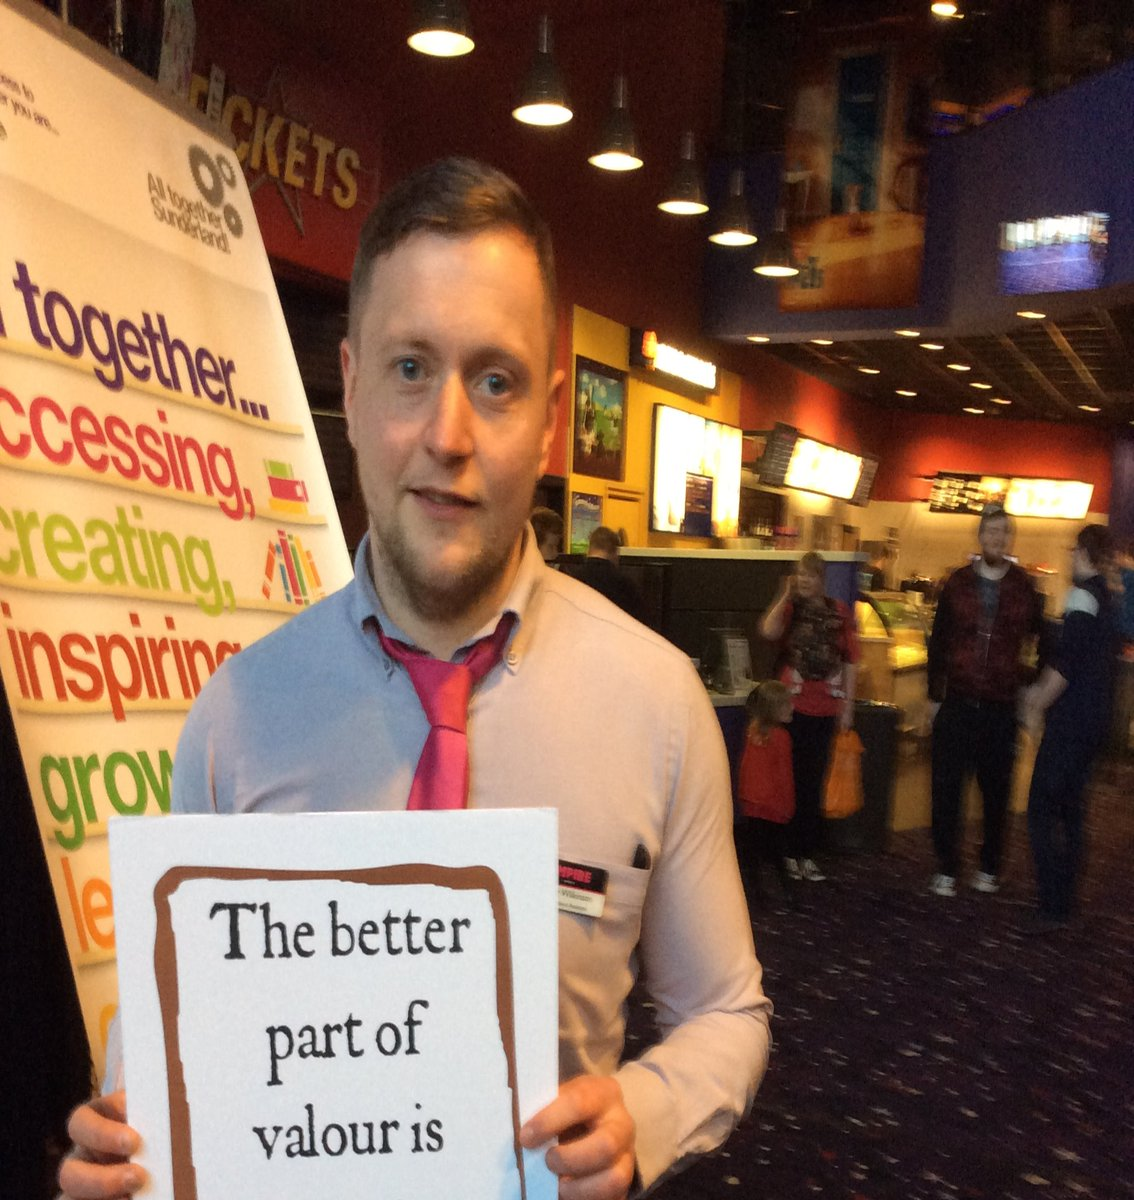 #Shakespeare16 Thanks to Craig and Empire Cinema for your welcome today https://t.co/lyfACVF0j6